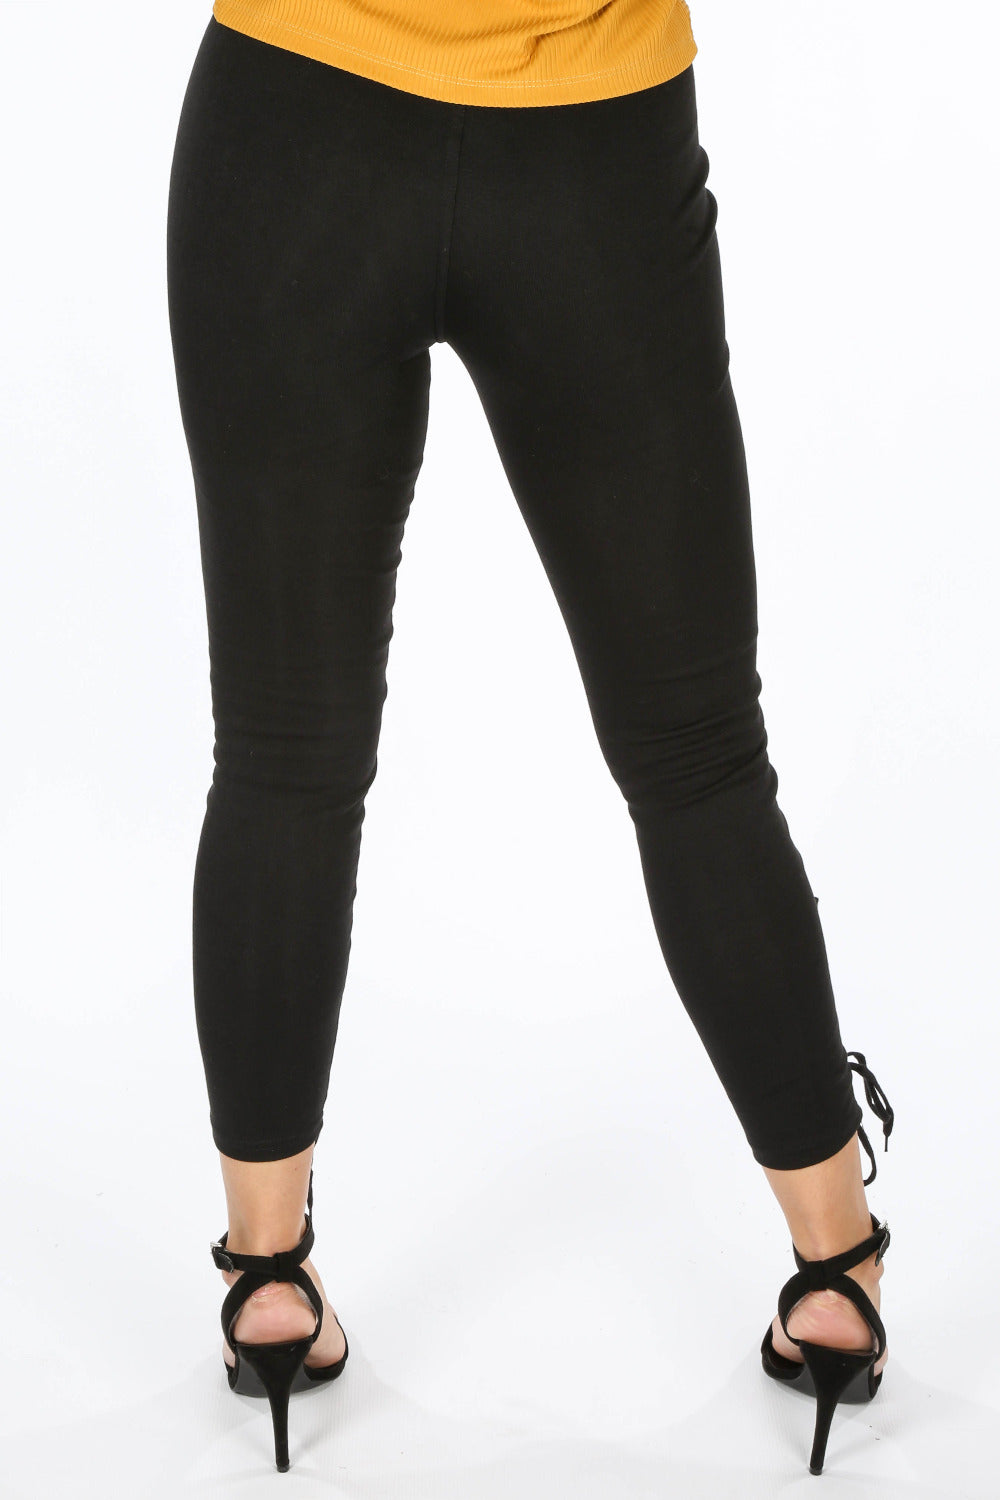 Black Lace Up Jersey Leggings